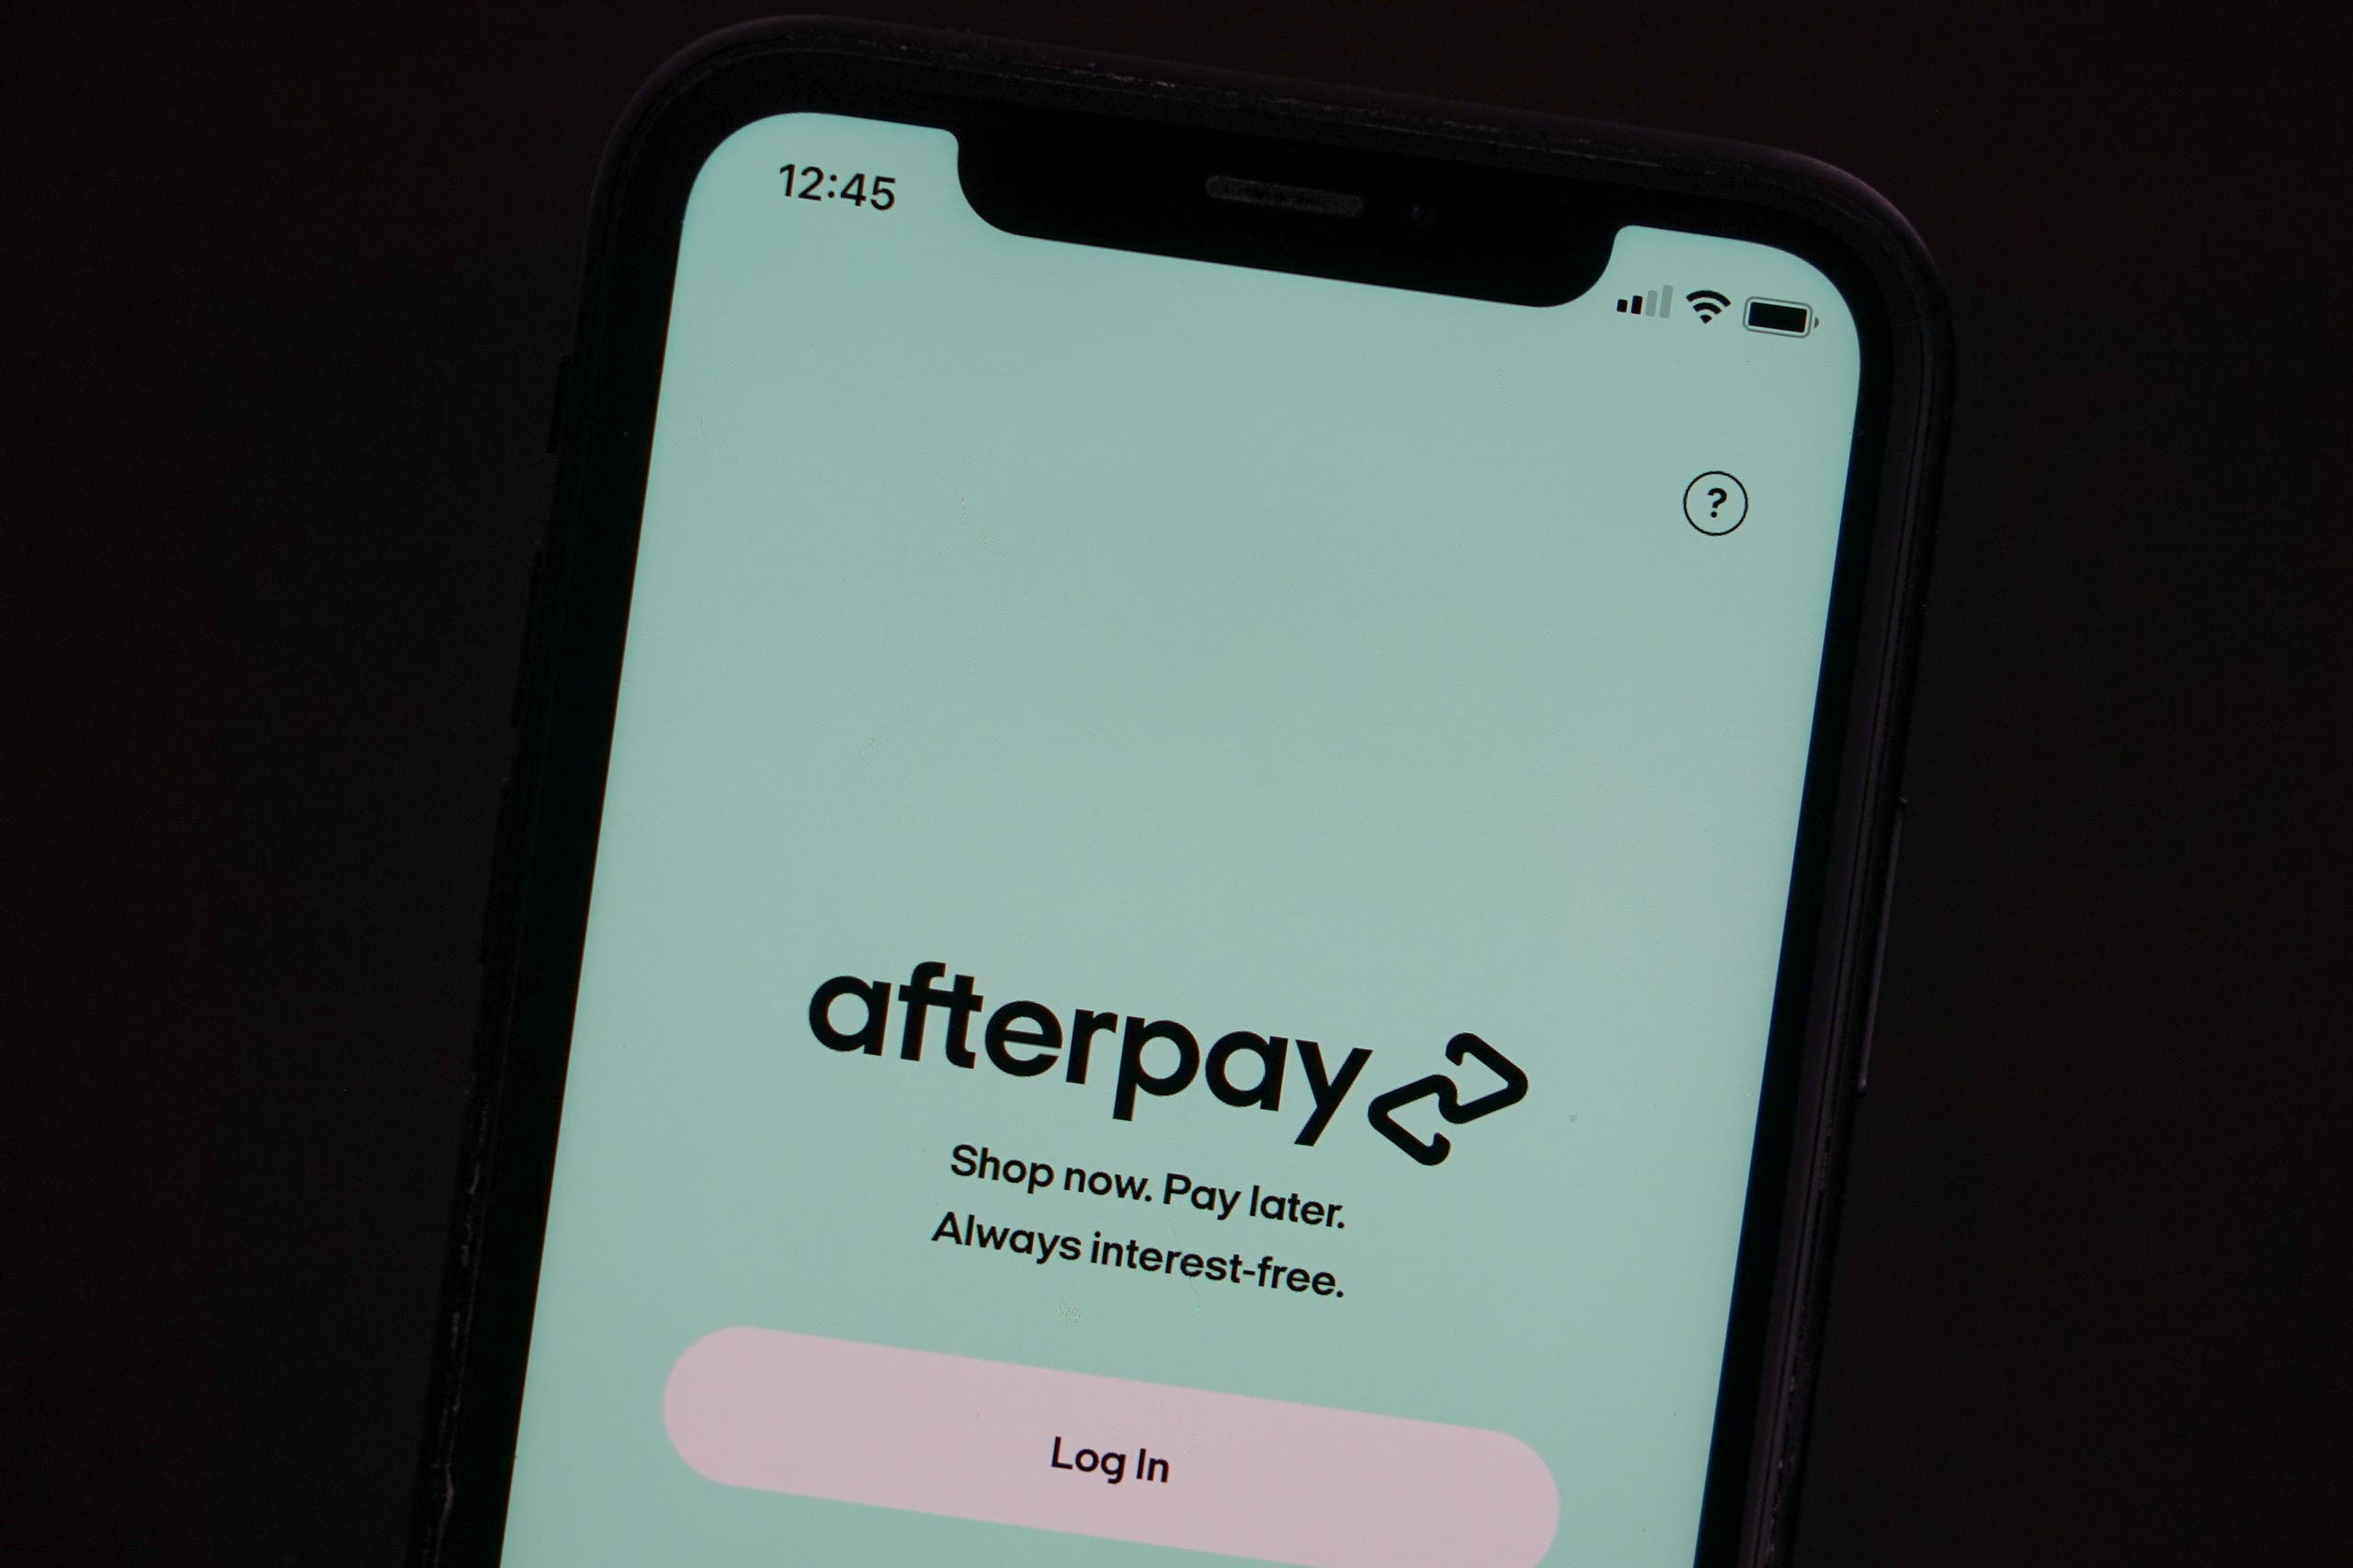 AfterPay application. (File photo)